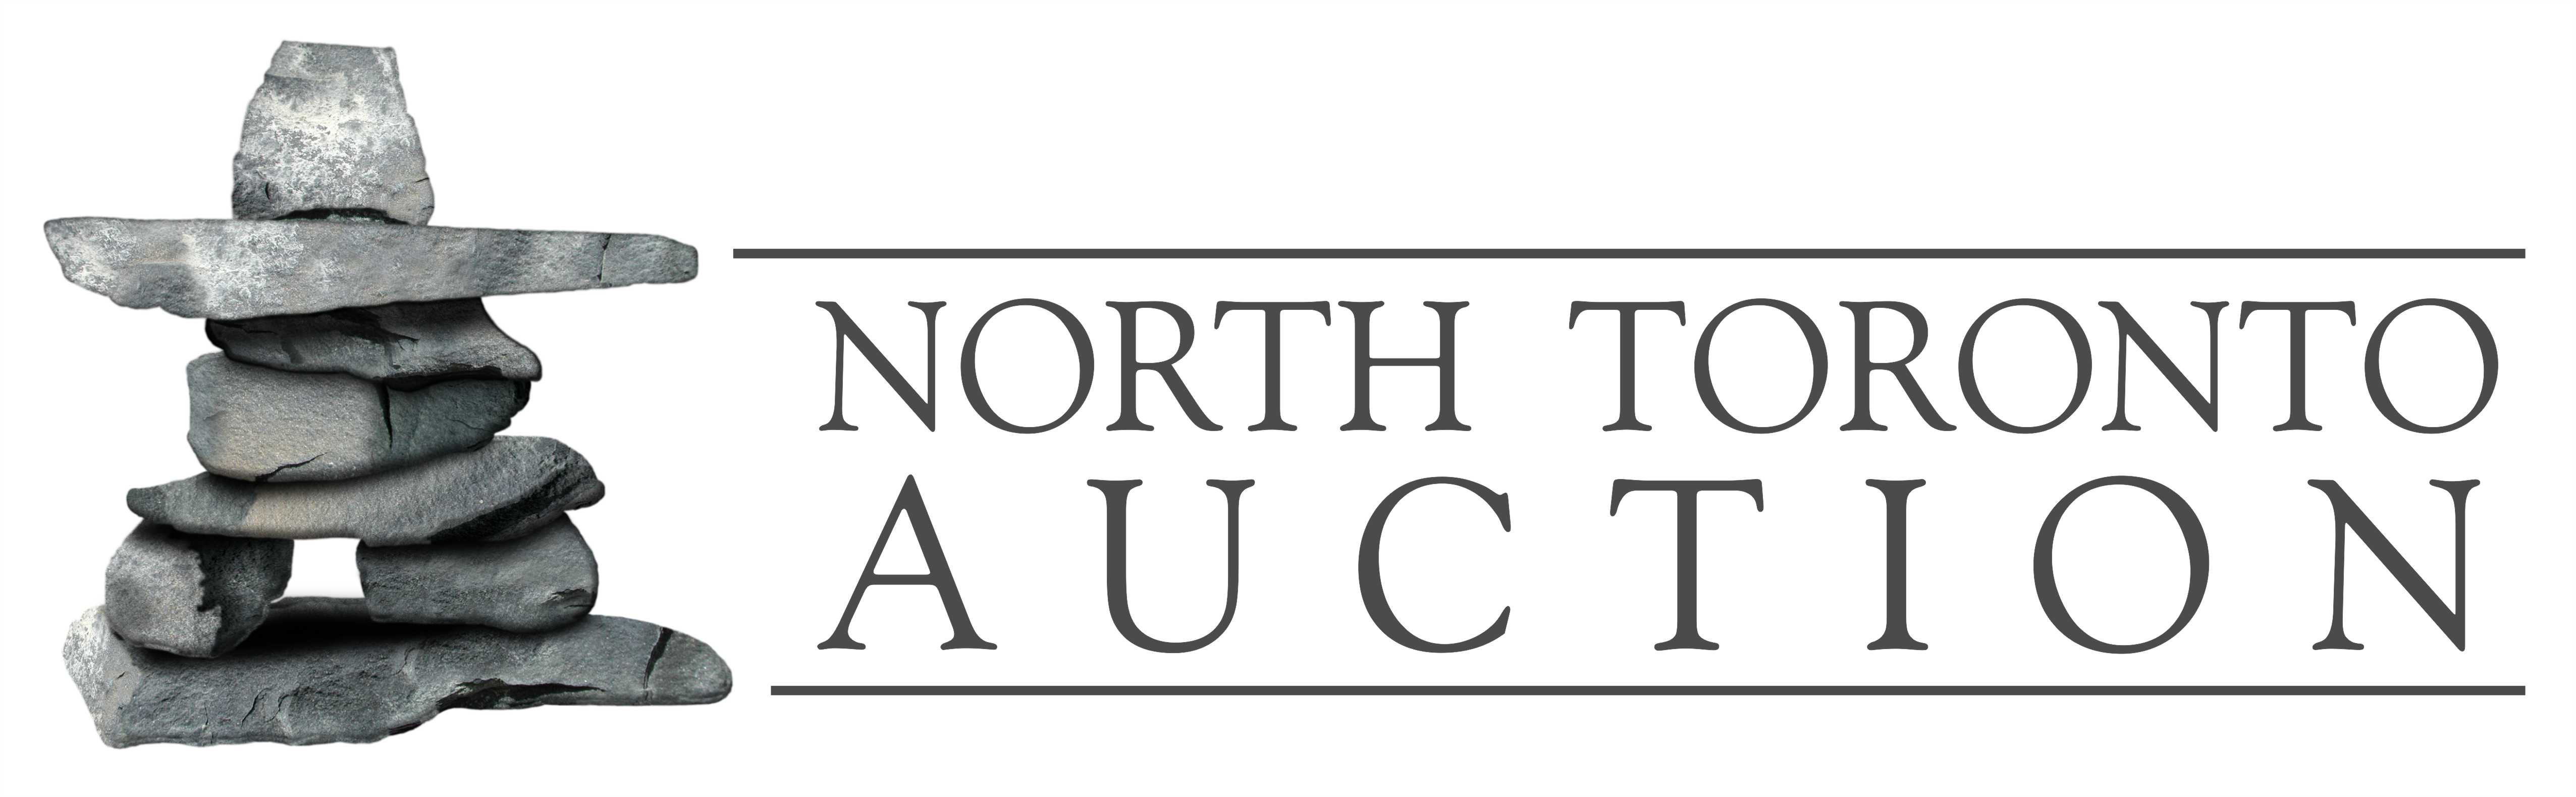 image of inuksuk with text that reads north toronto auction